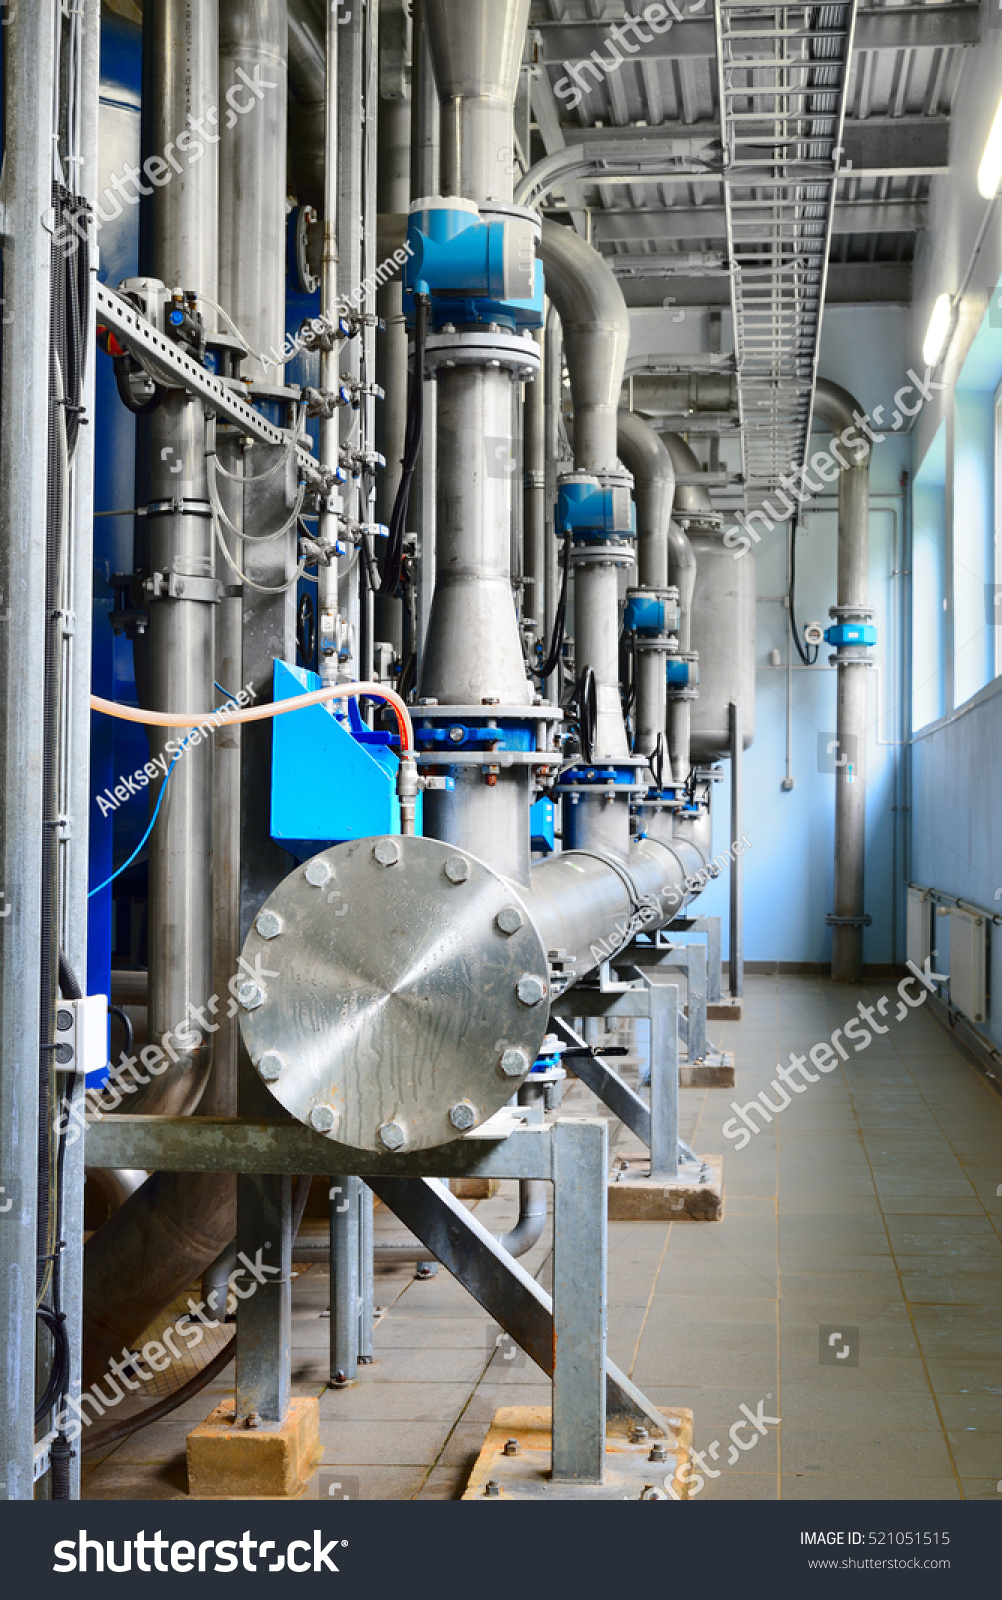 Industrial Water Treatment : Large industrial water treatment boiler room stock photo